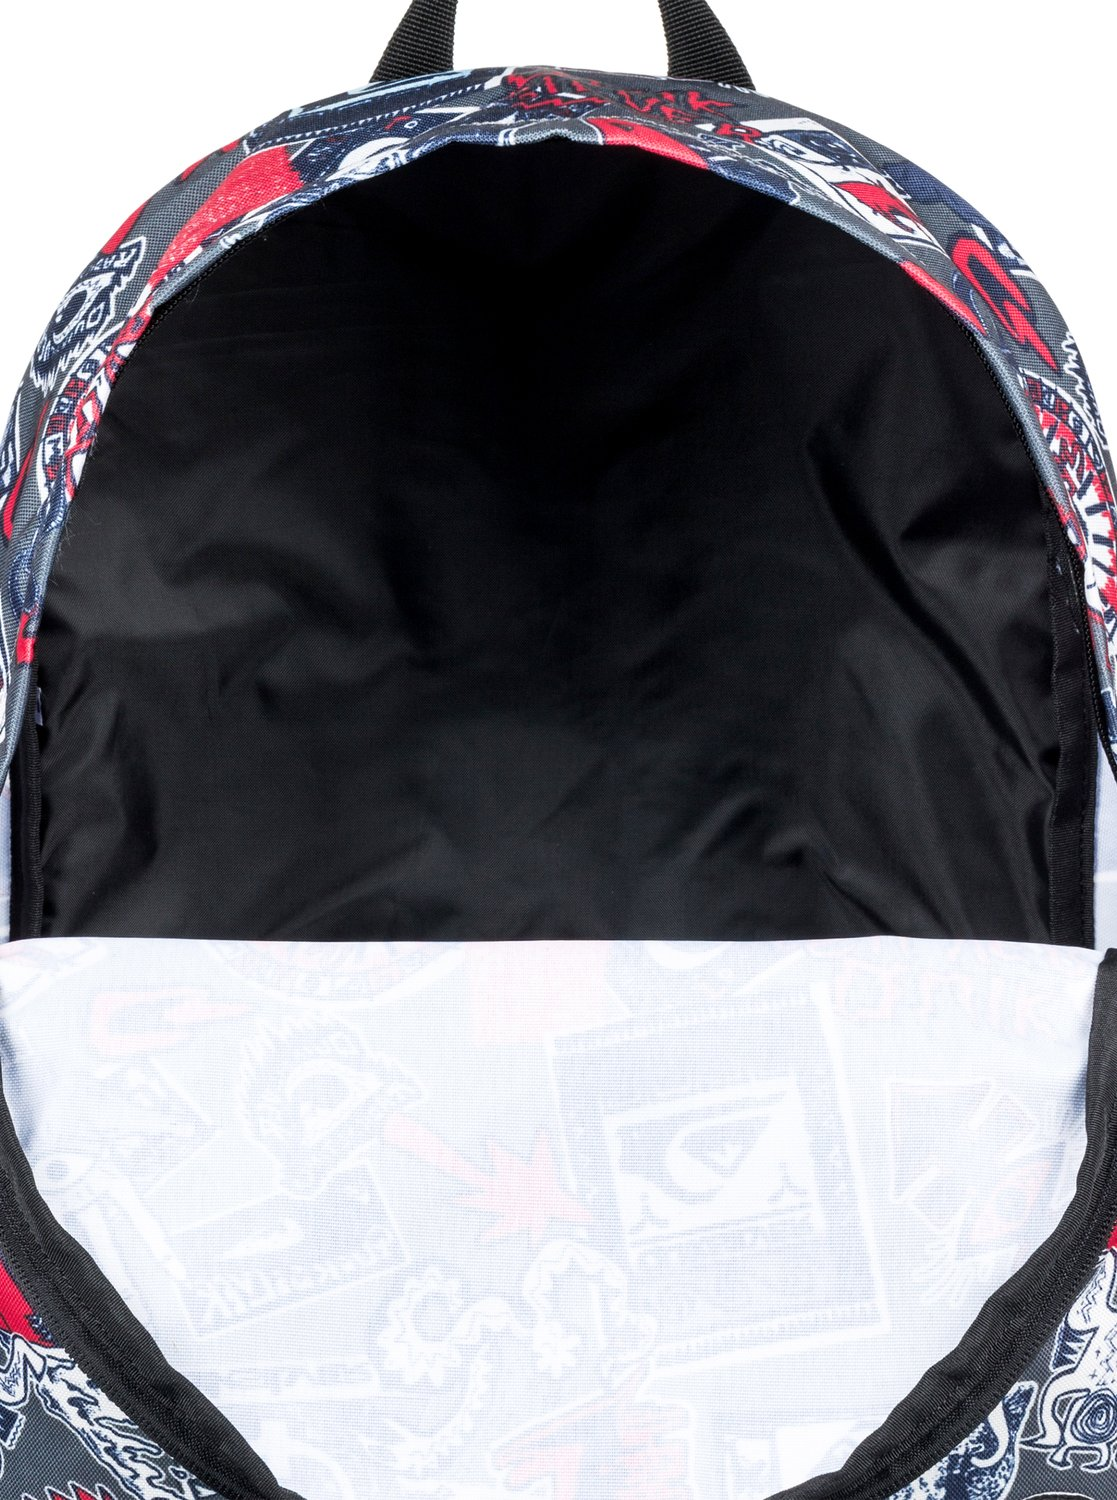 Quiksilver-Everyday-Poster-25L-Sac-a-dos-taille-moyenne-Homme miniature 19